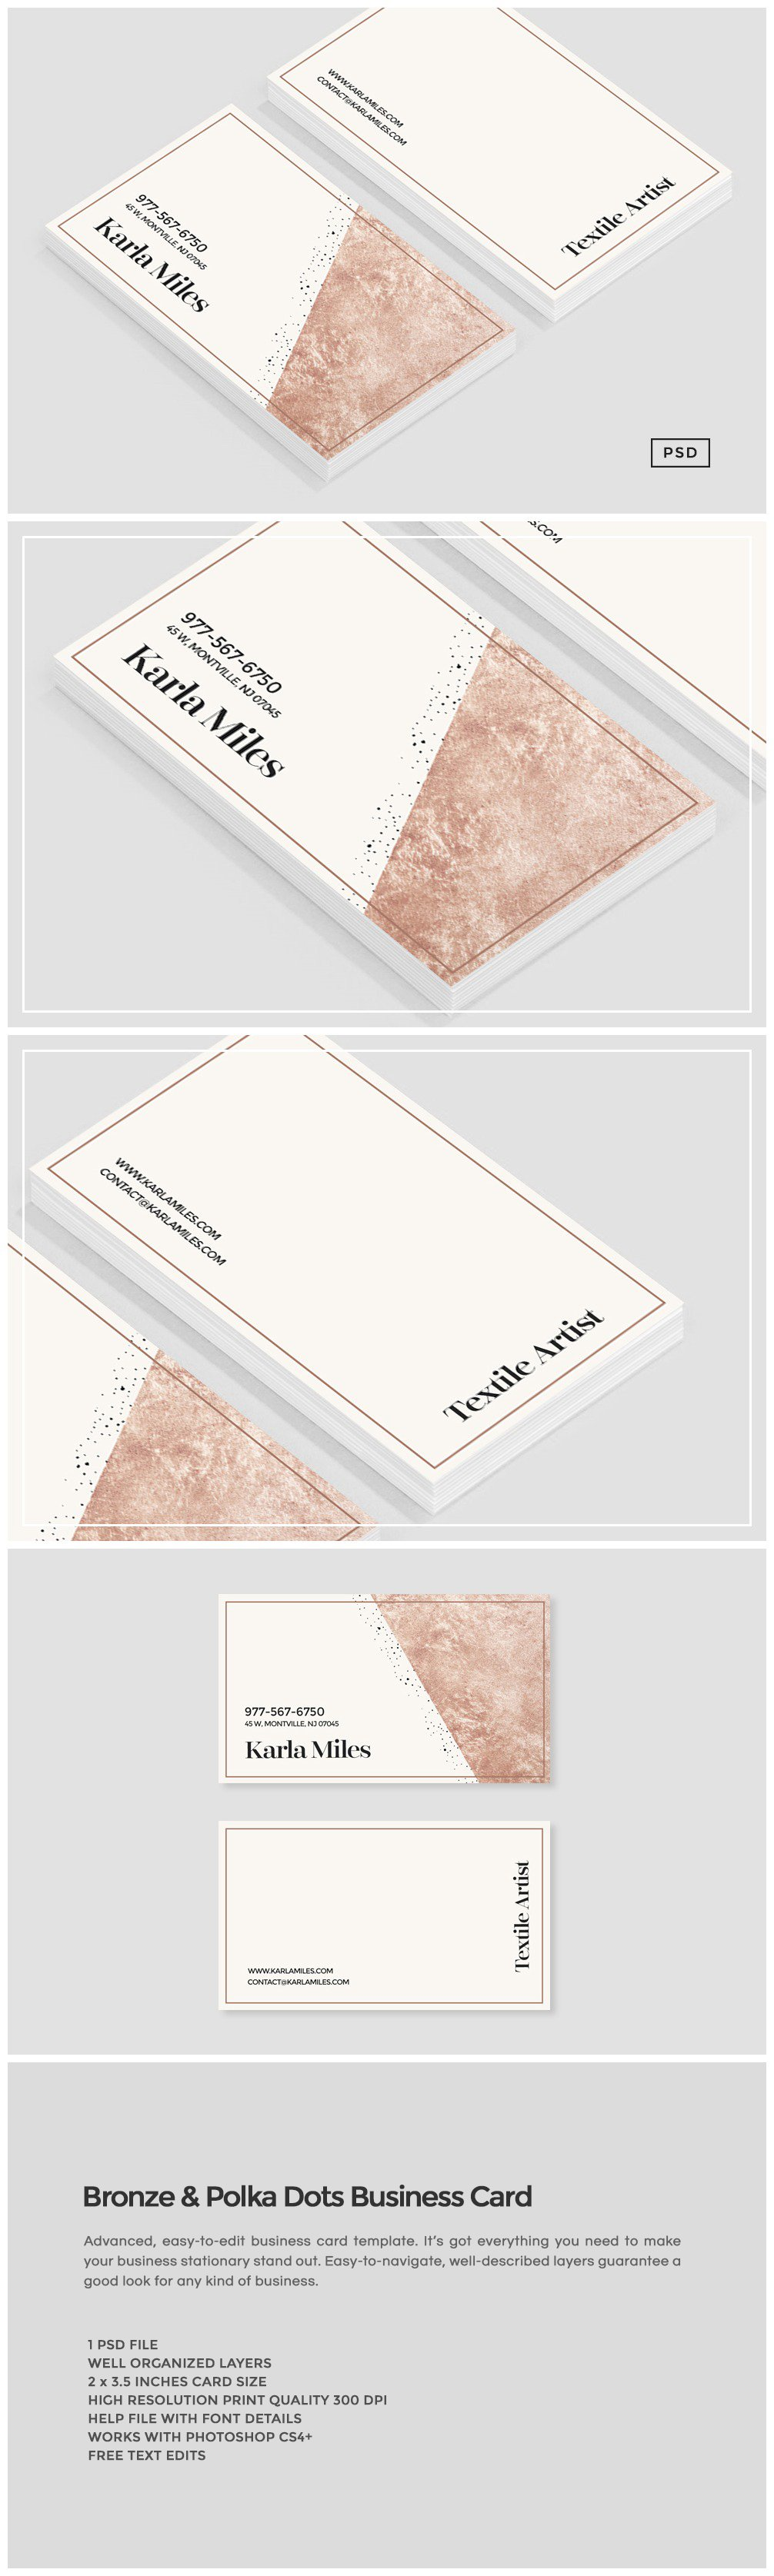 Bronze polka dots business card business card templates bronze polka dots business card business card templates creative market cheaphphosting Images